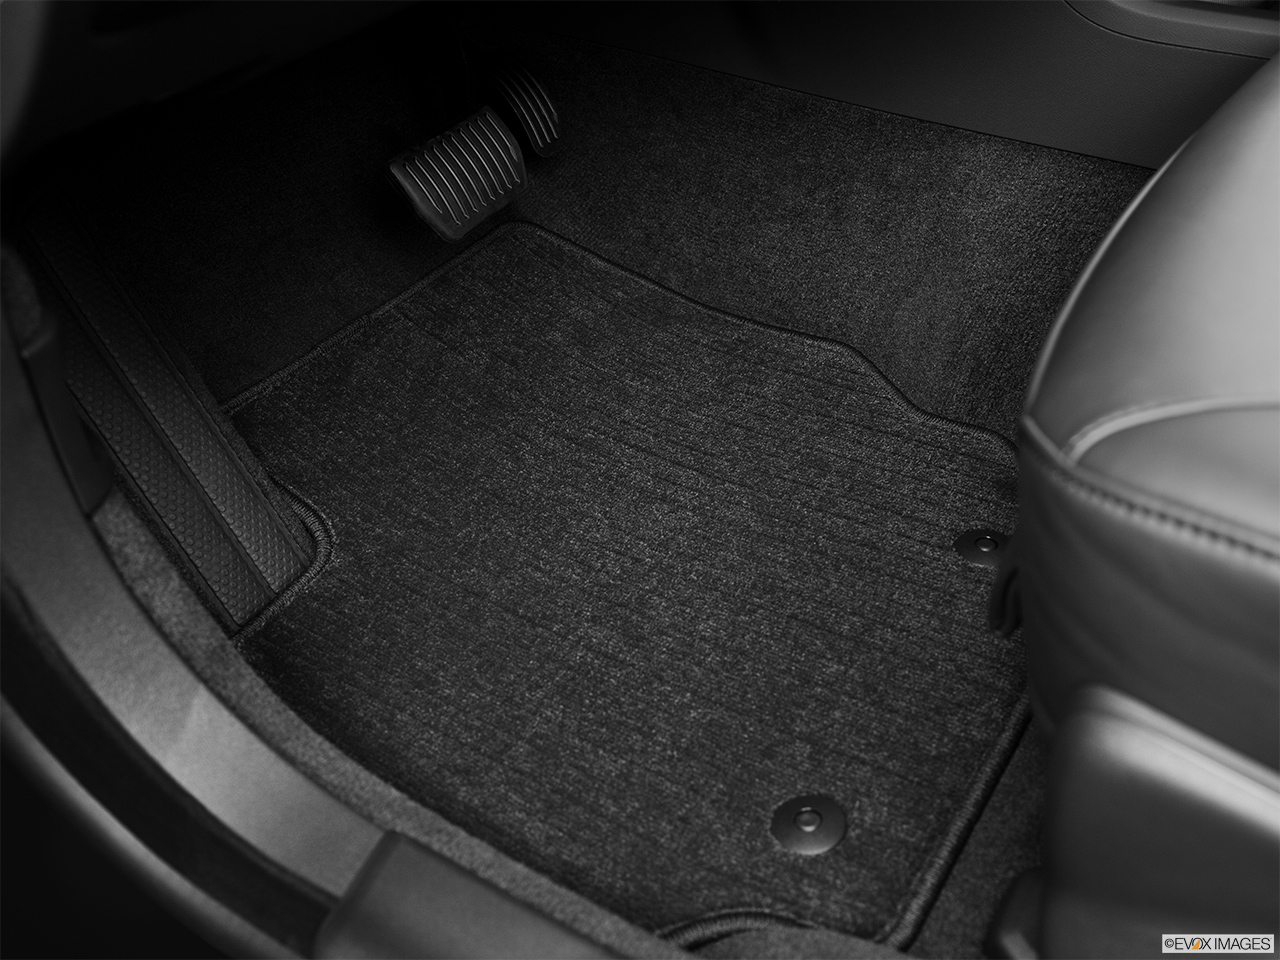 2013 Volvo S80 3.2 Platinum Driver's floor mat and pedals. Mid-seat level from outside looking in.